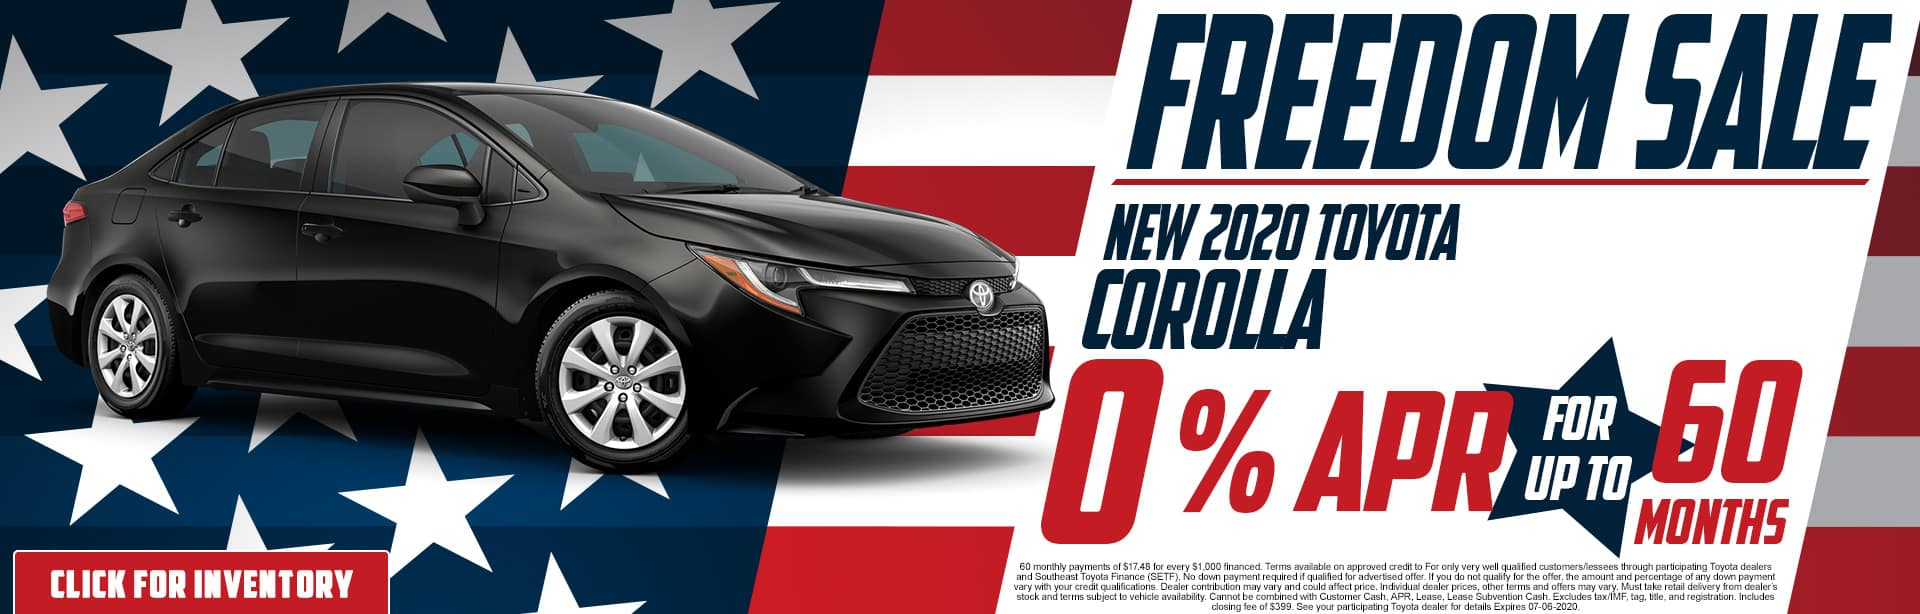 2020 Toyota Corolla | 0% APR for 60 Months